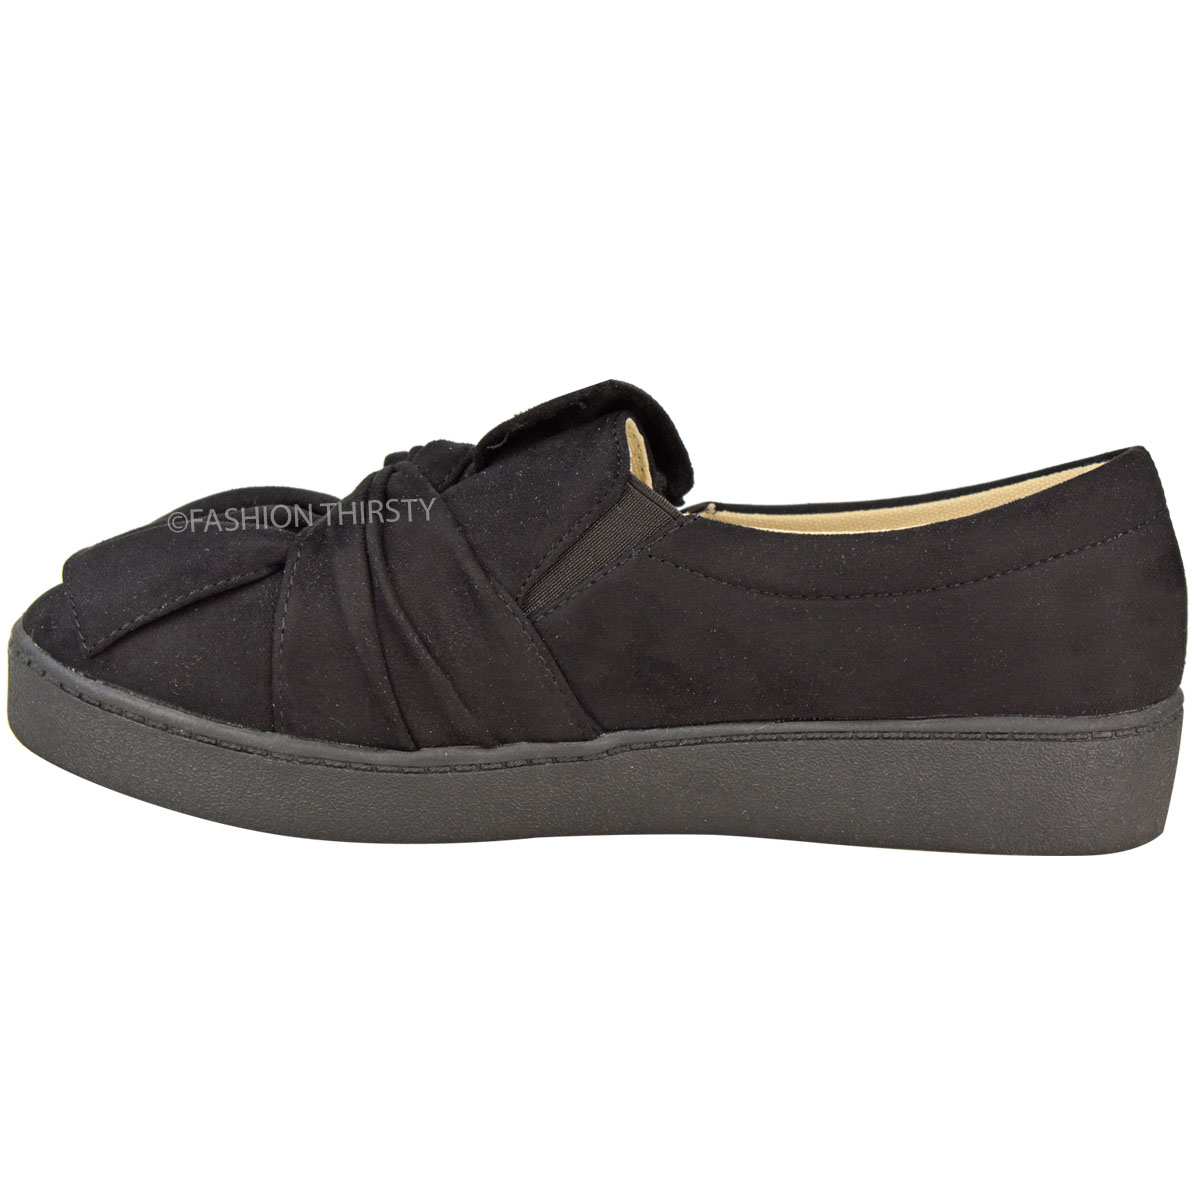 Womens-Ladies-Skater-Trainers-Slip-On-Thick-Sole-Plimsolls-Shoes-Pumps-Size-New